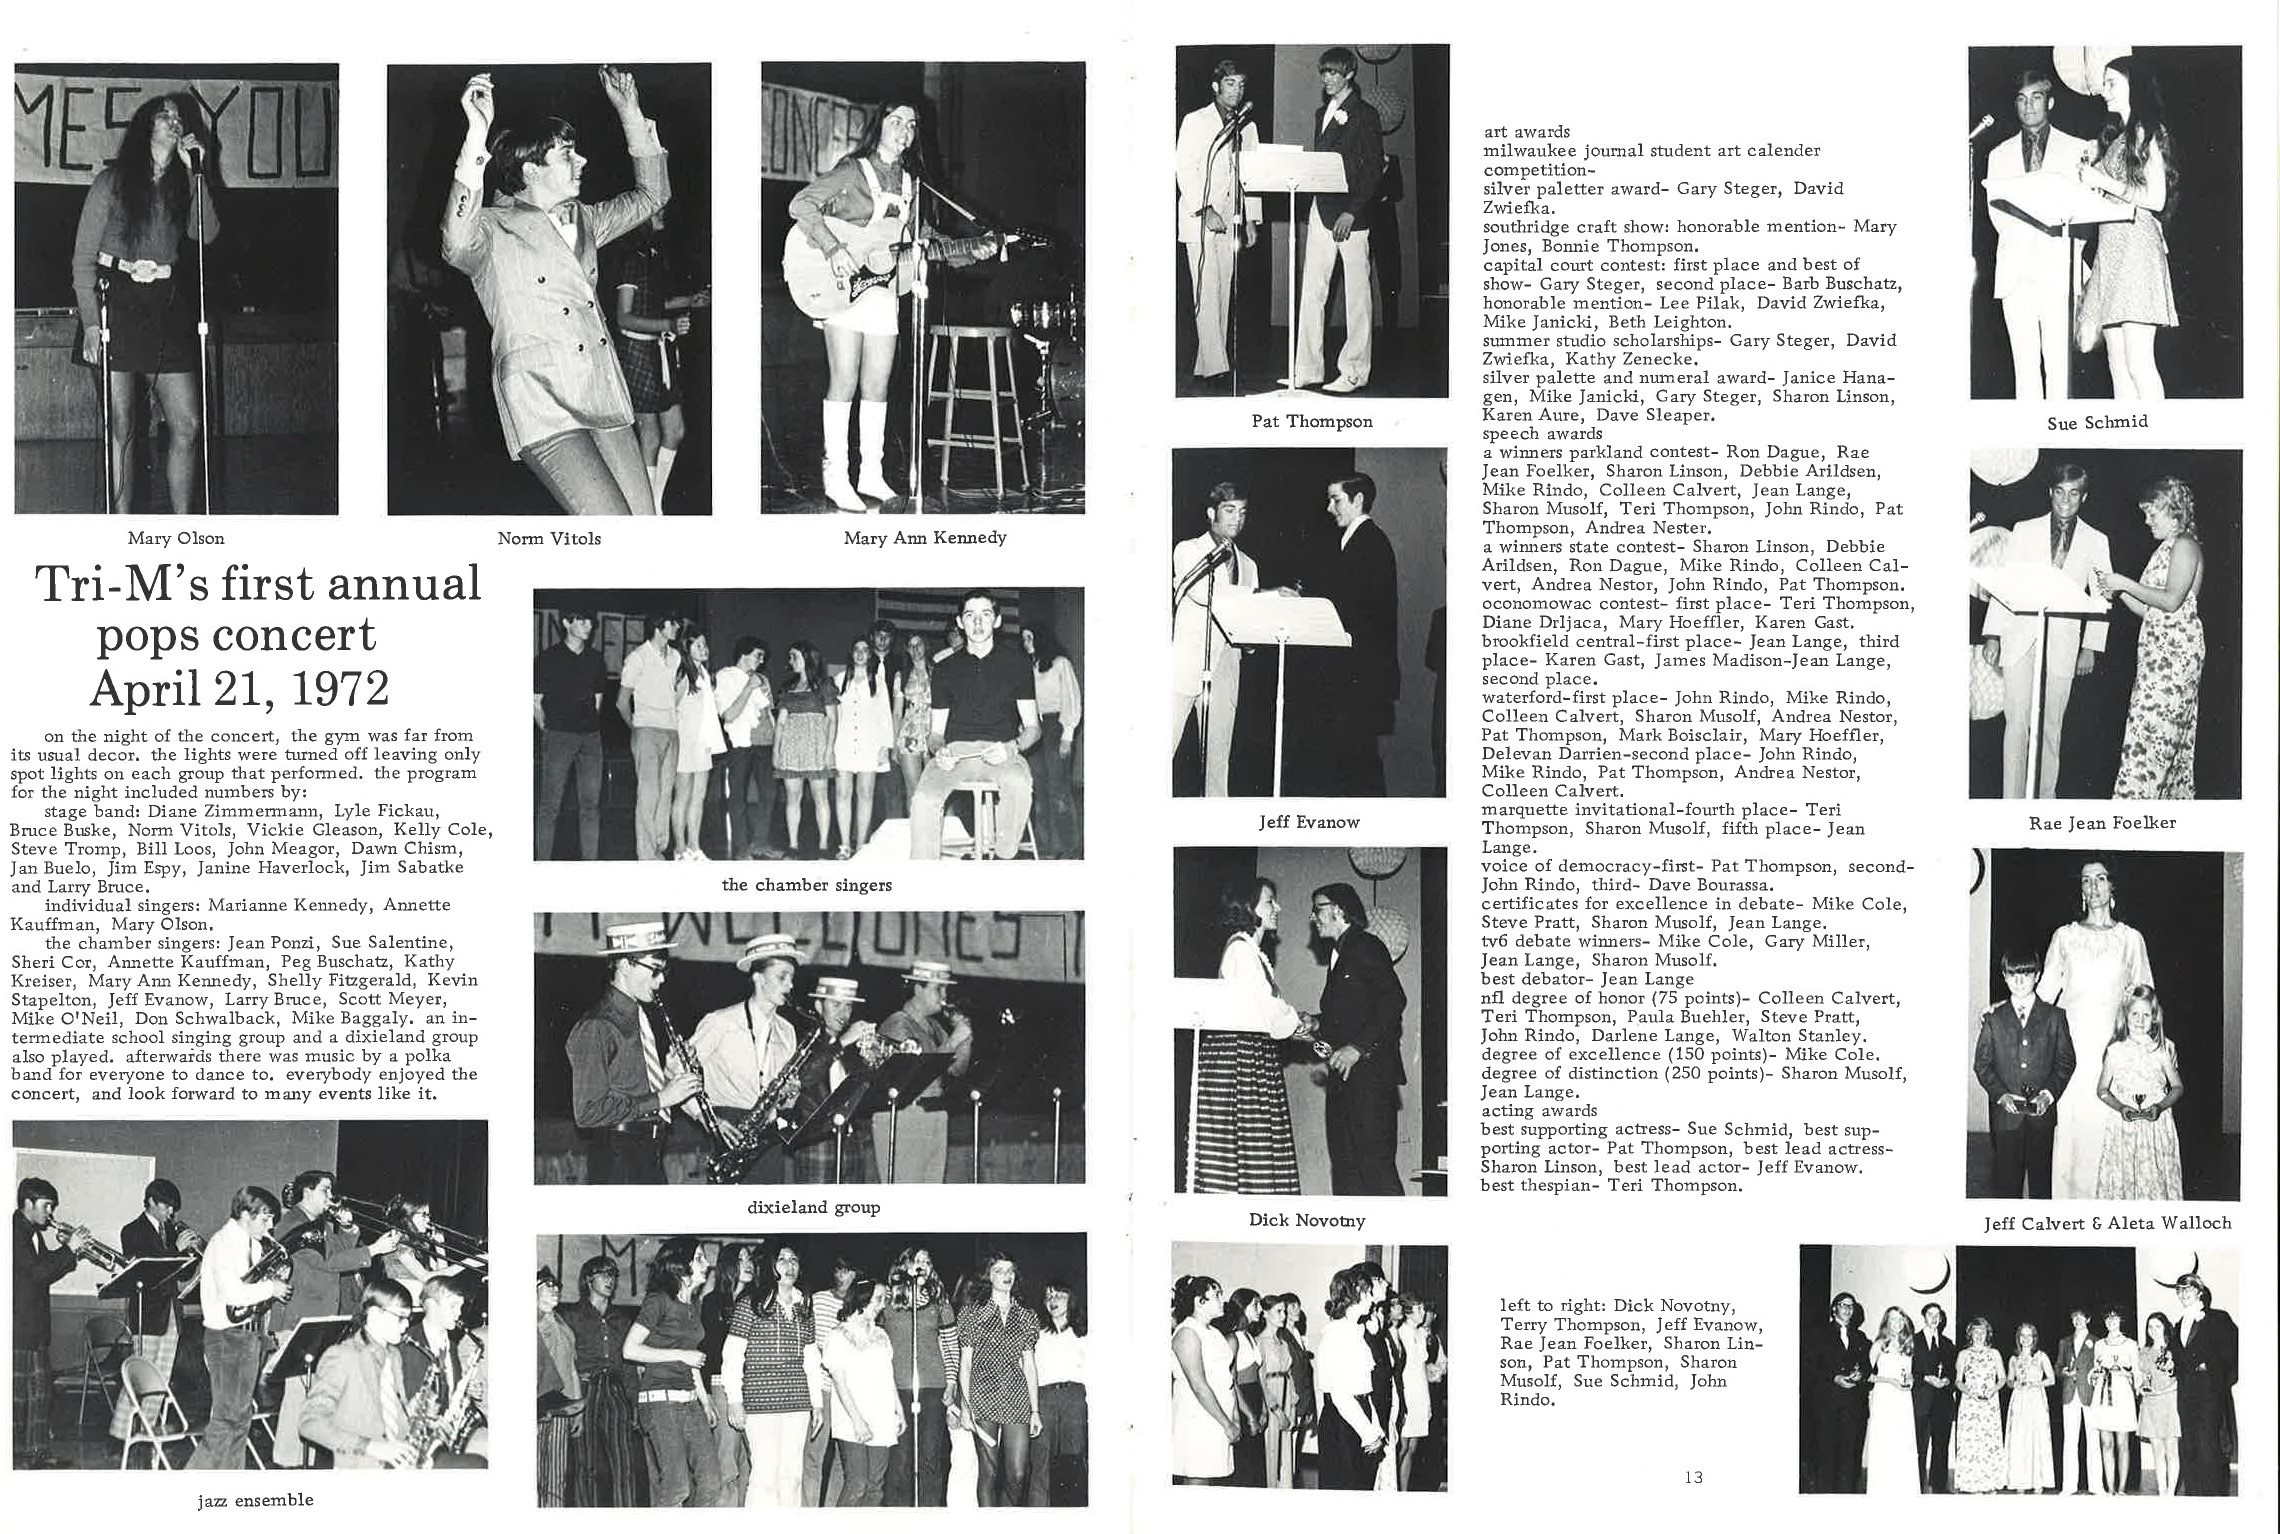 1973_Yearbook_12-13.jpg